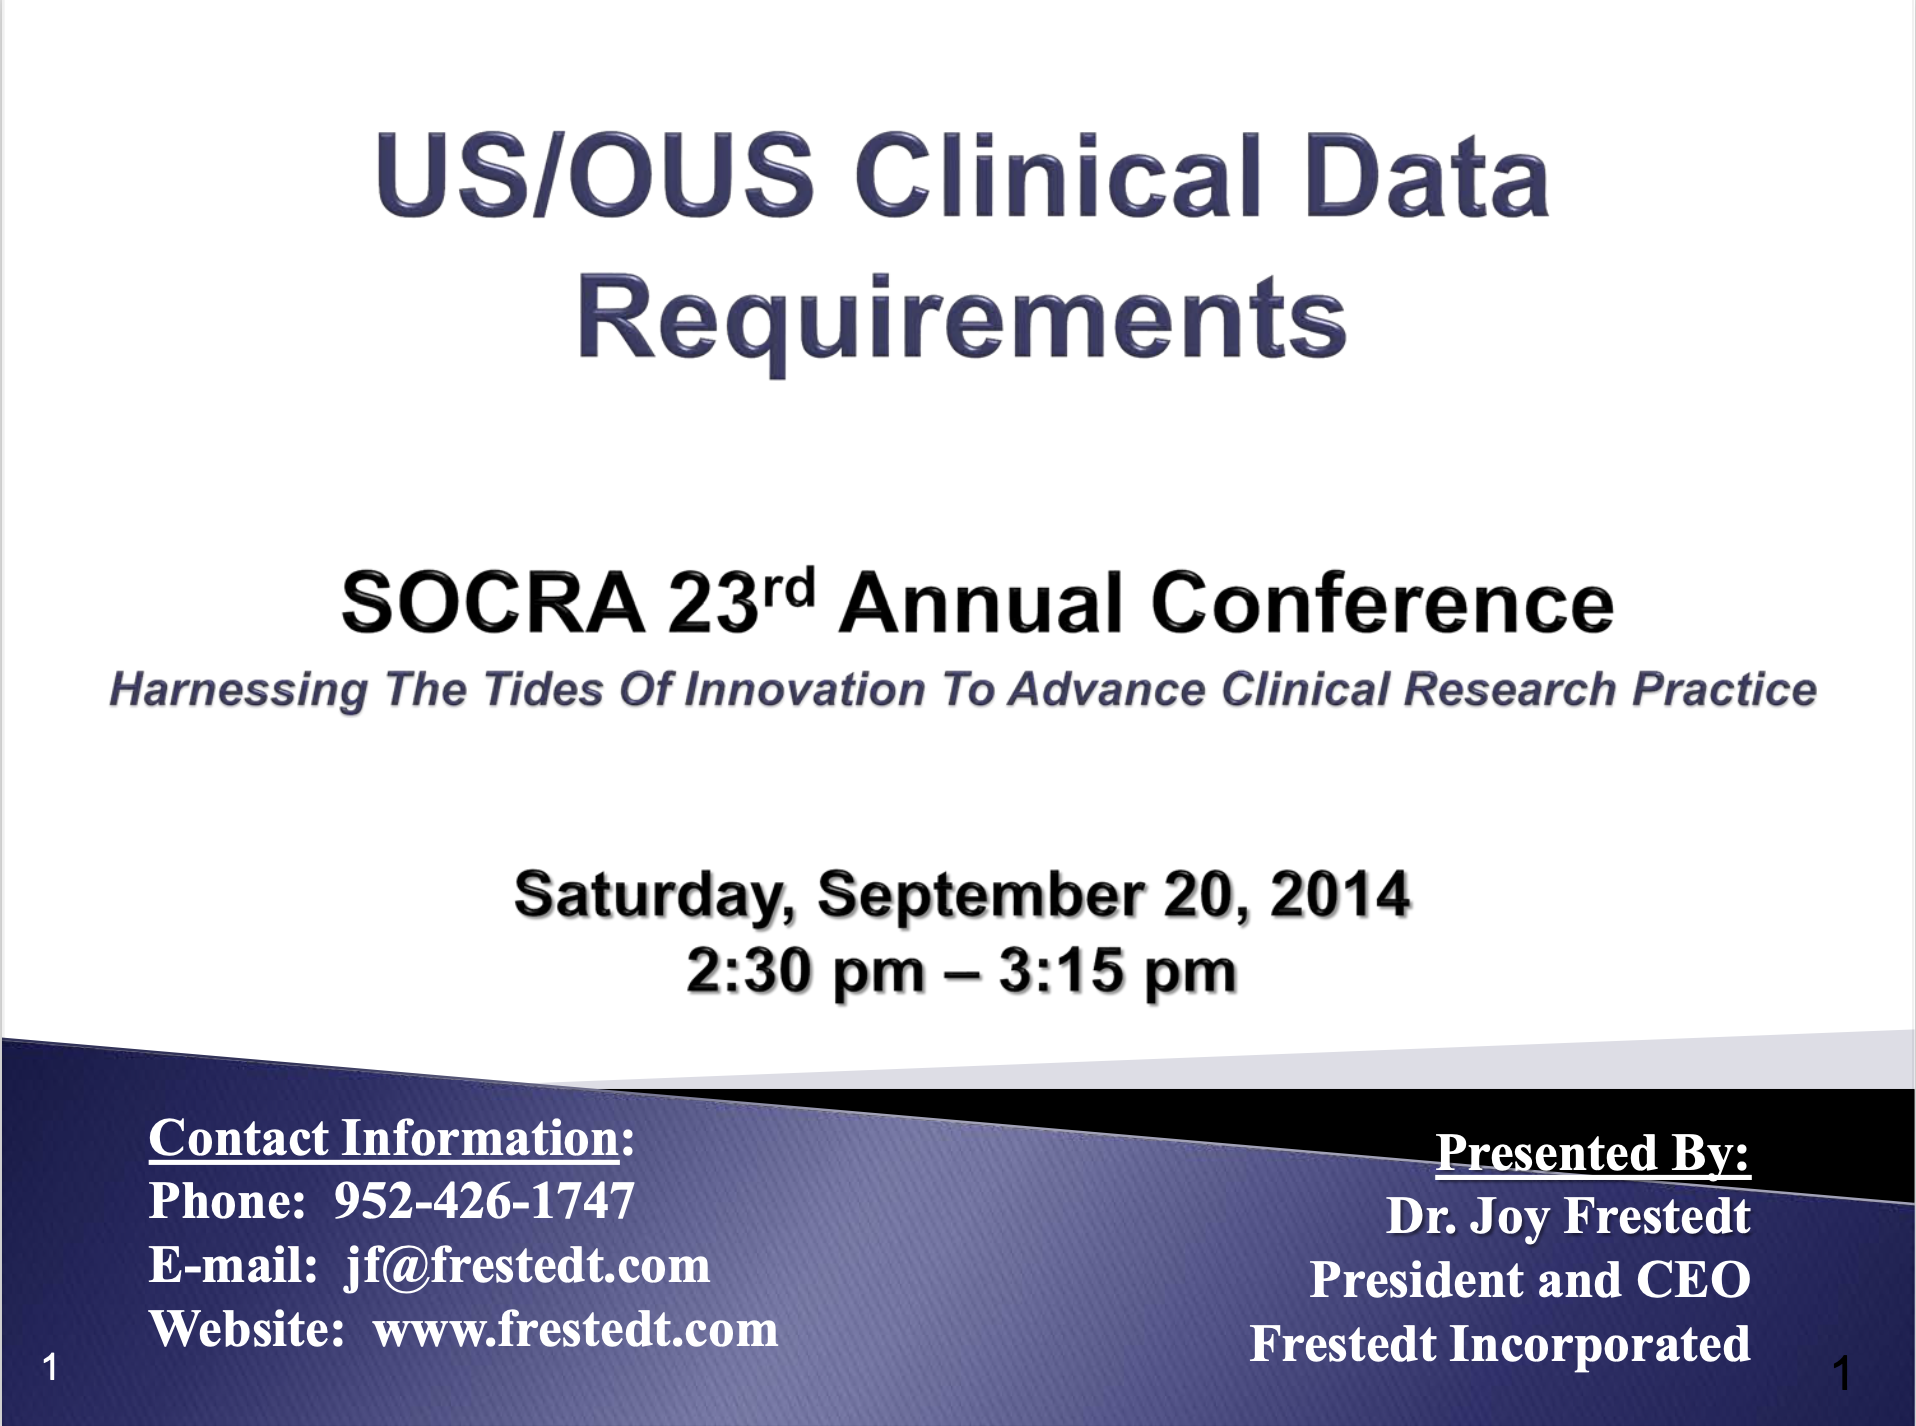 SOCRA 23rd Annual Conference: US/OUS Clinical Data Requirements flyer